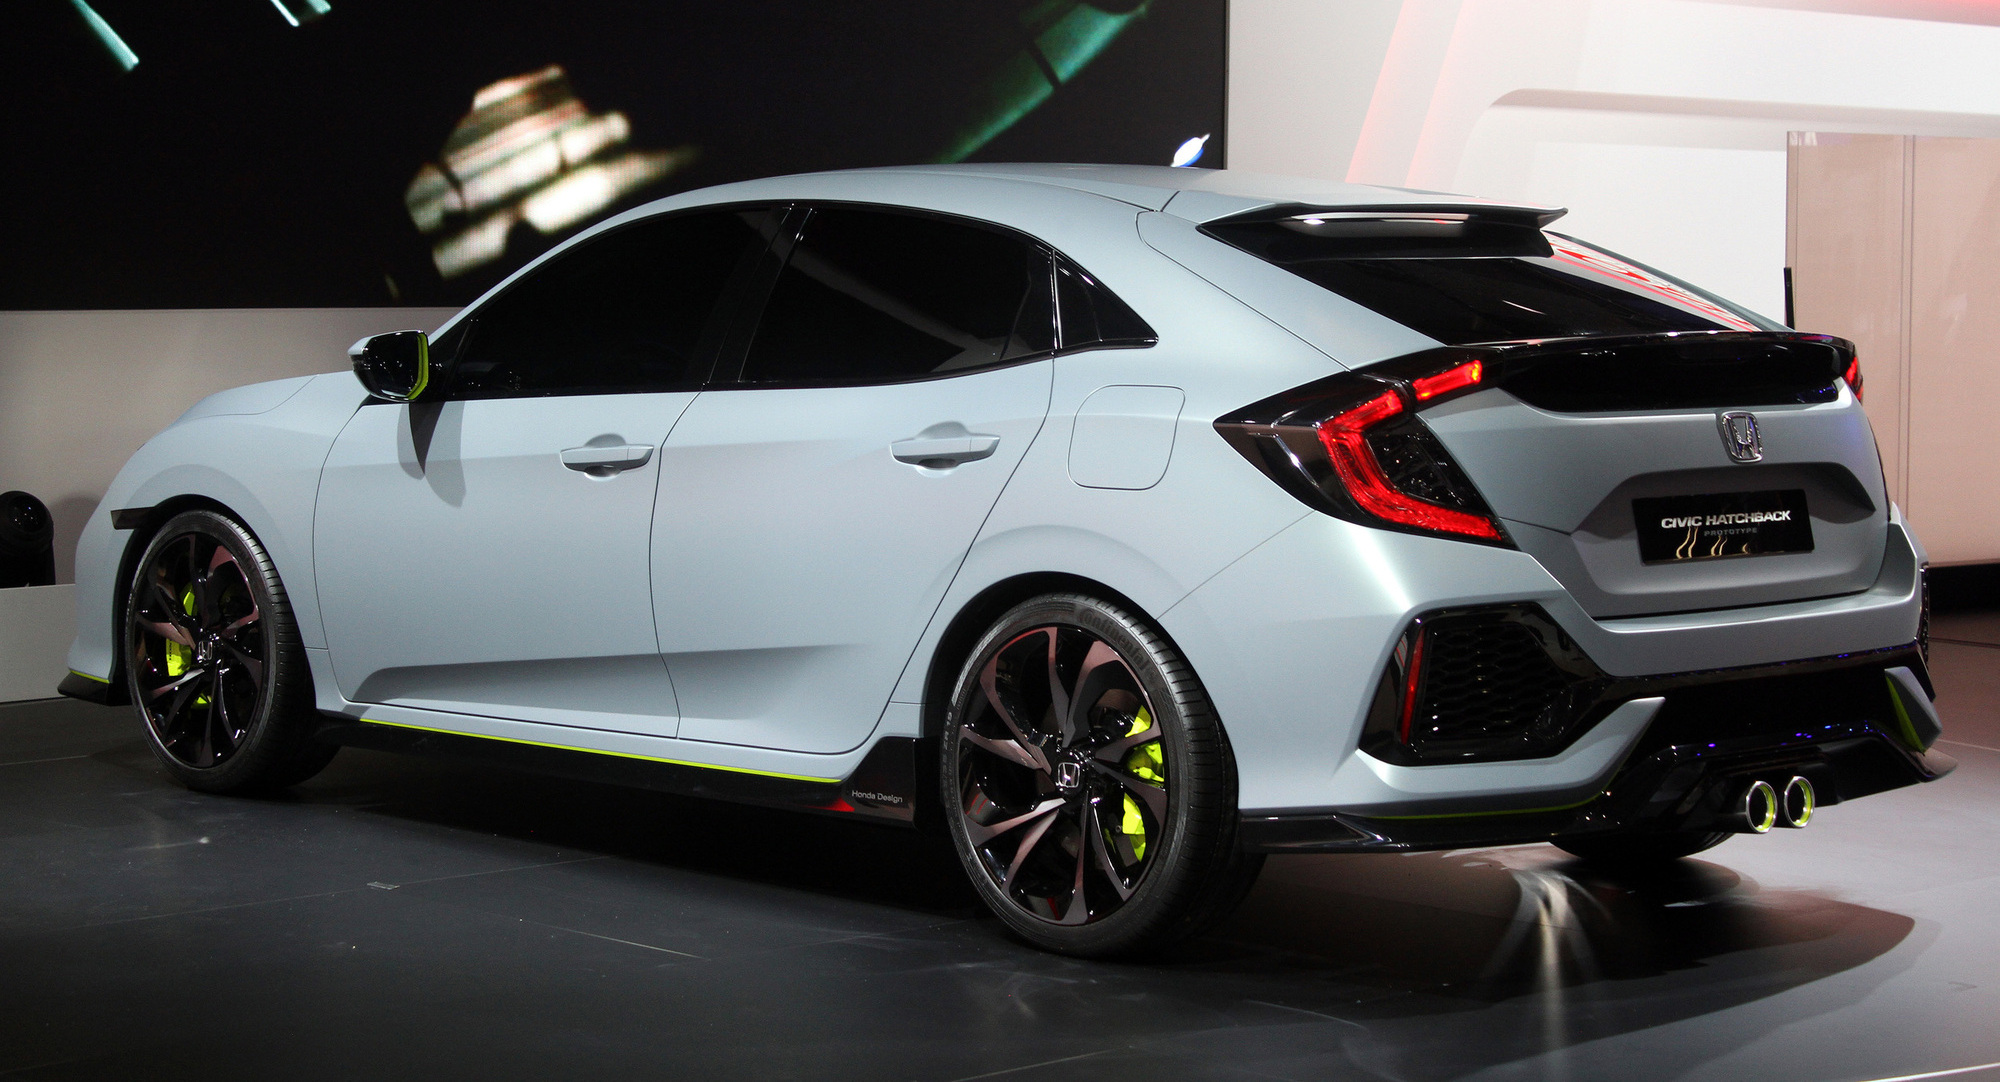 2017 Honda Civic Expected Price Is Around Pkr 25 Lacs